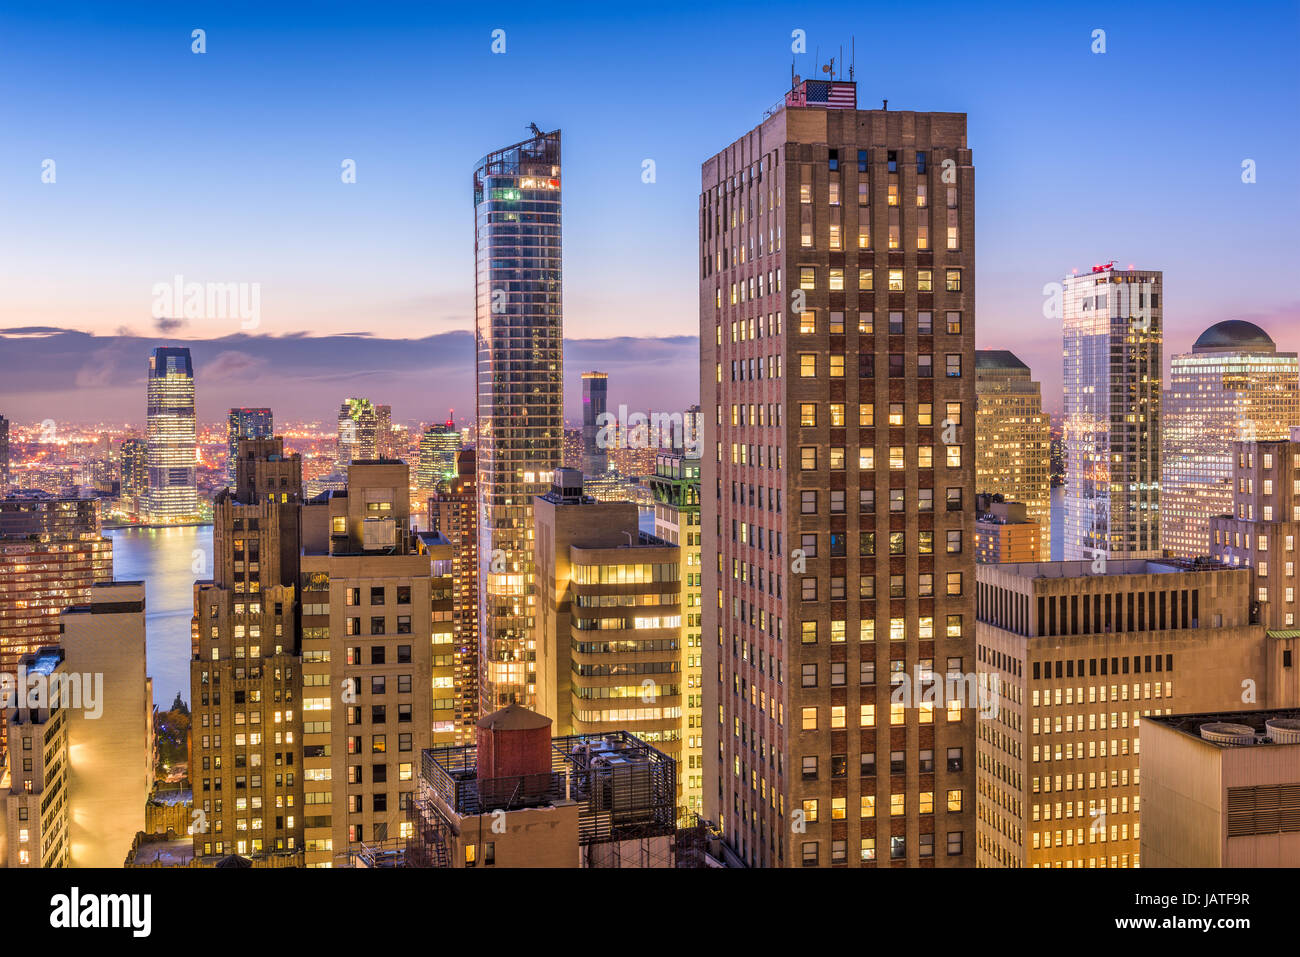 New York City Financial District cityscape. - Stock Image